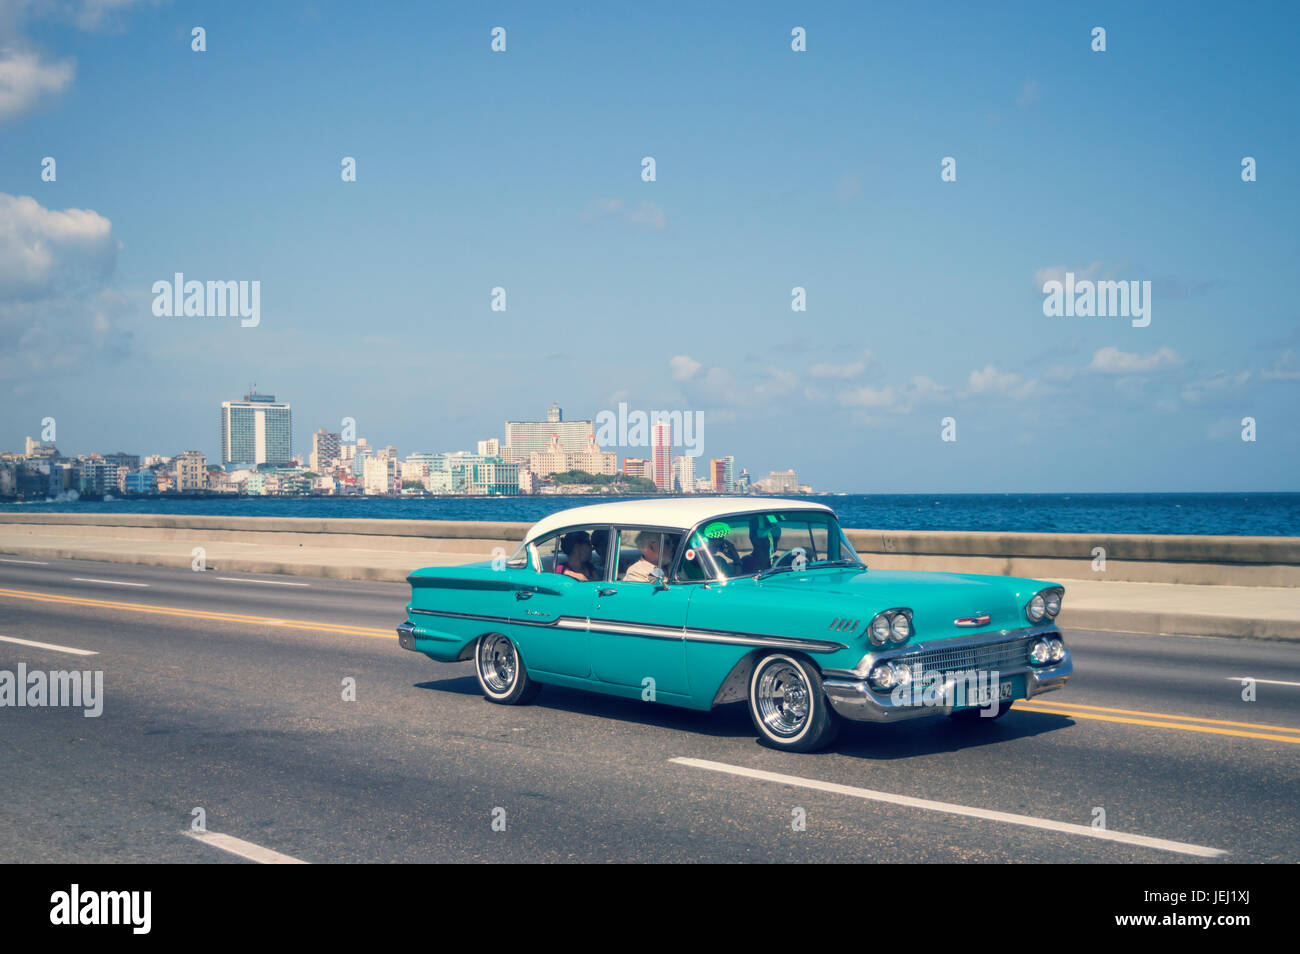 HAVANA, CUBA - April 18: Blue old classic cars on the Malecon, the ...